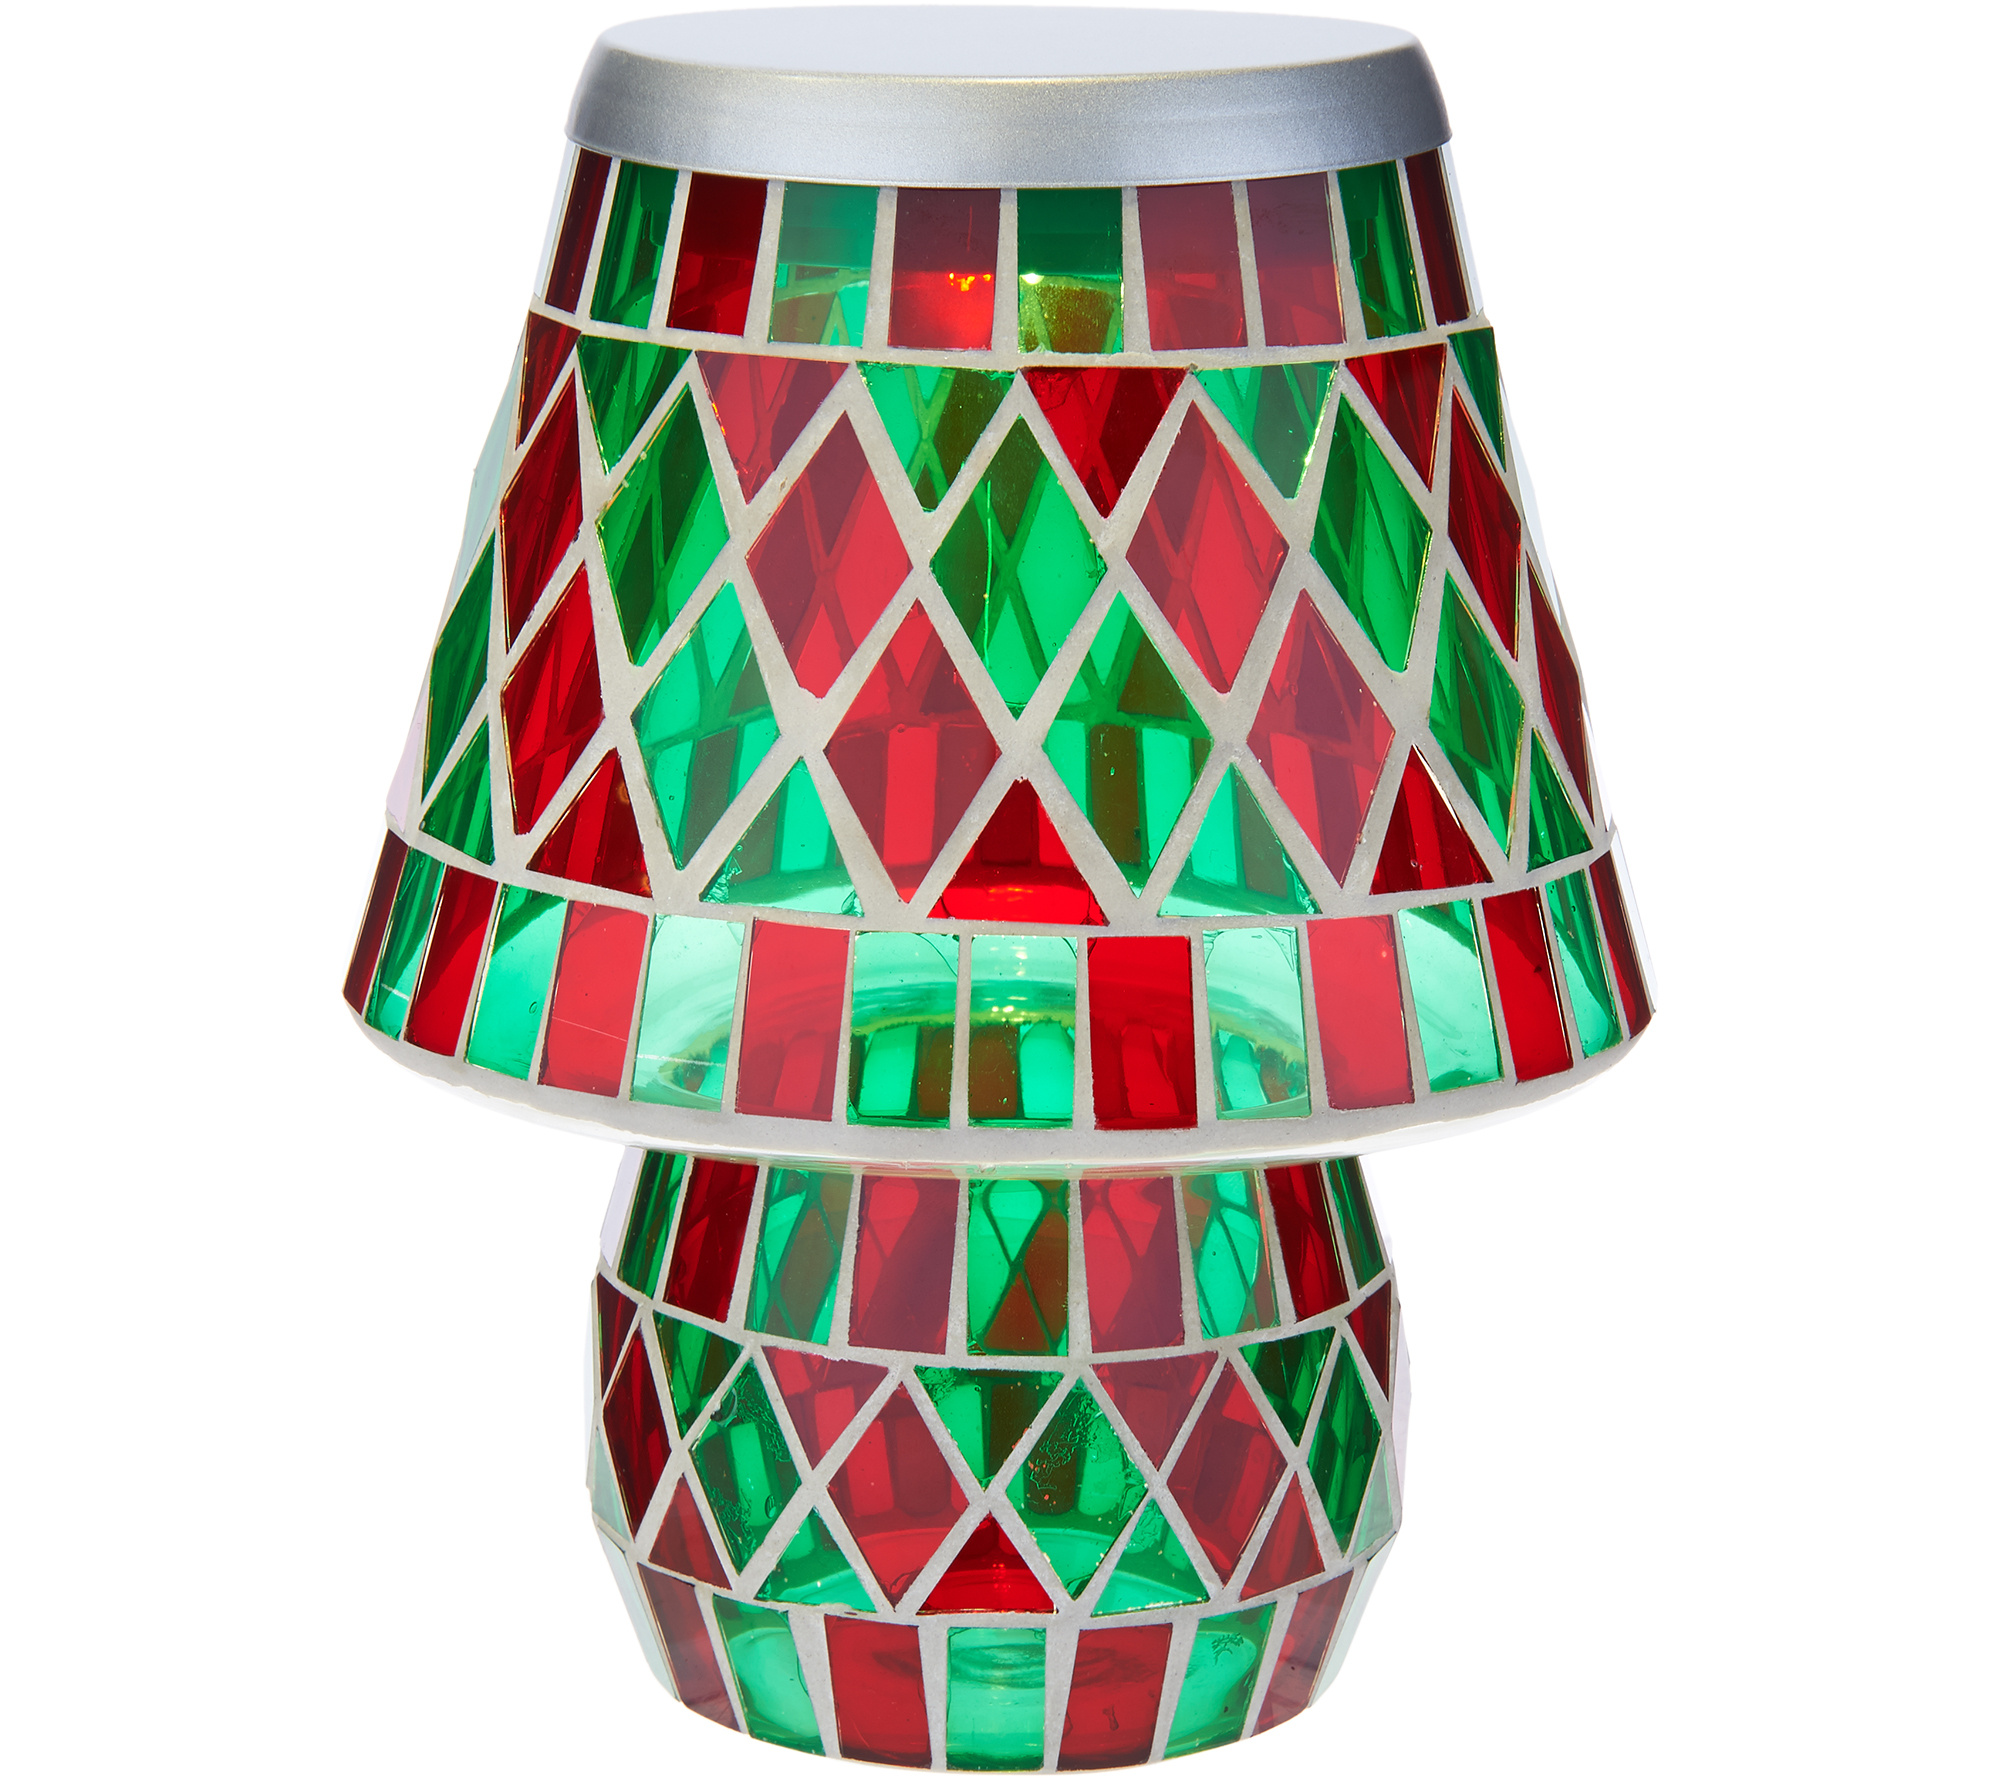 Glass tile diamond pattern battery operated lamp by valerie page 1 qvc com